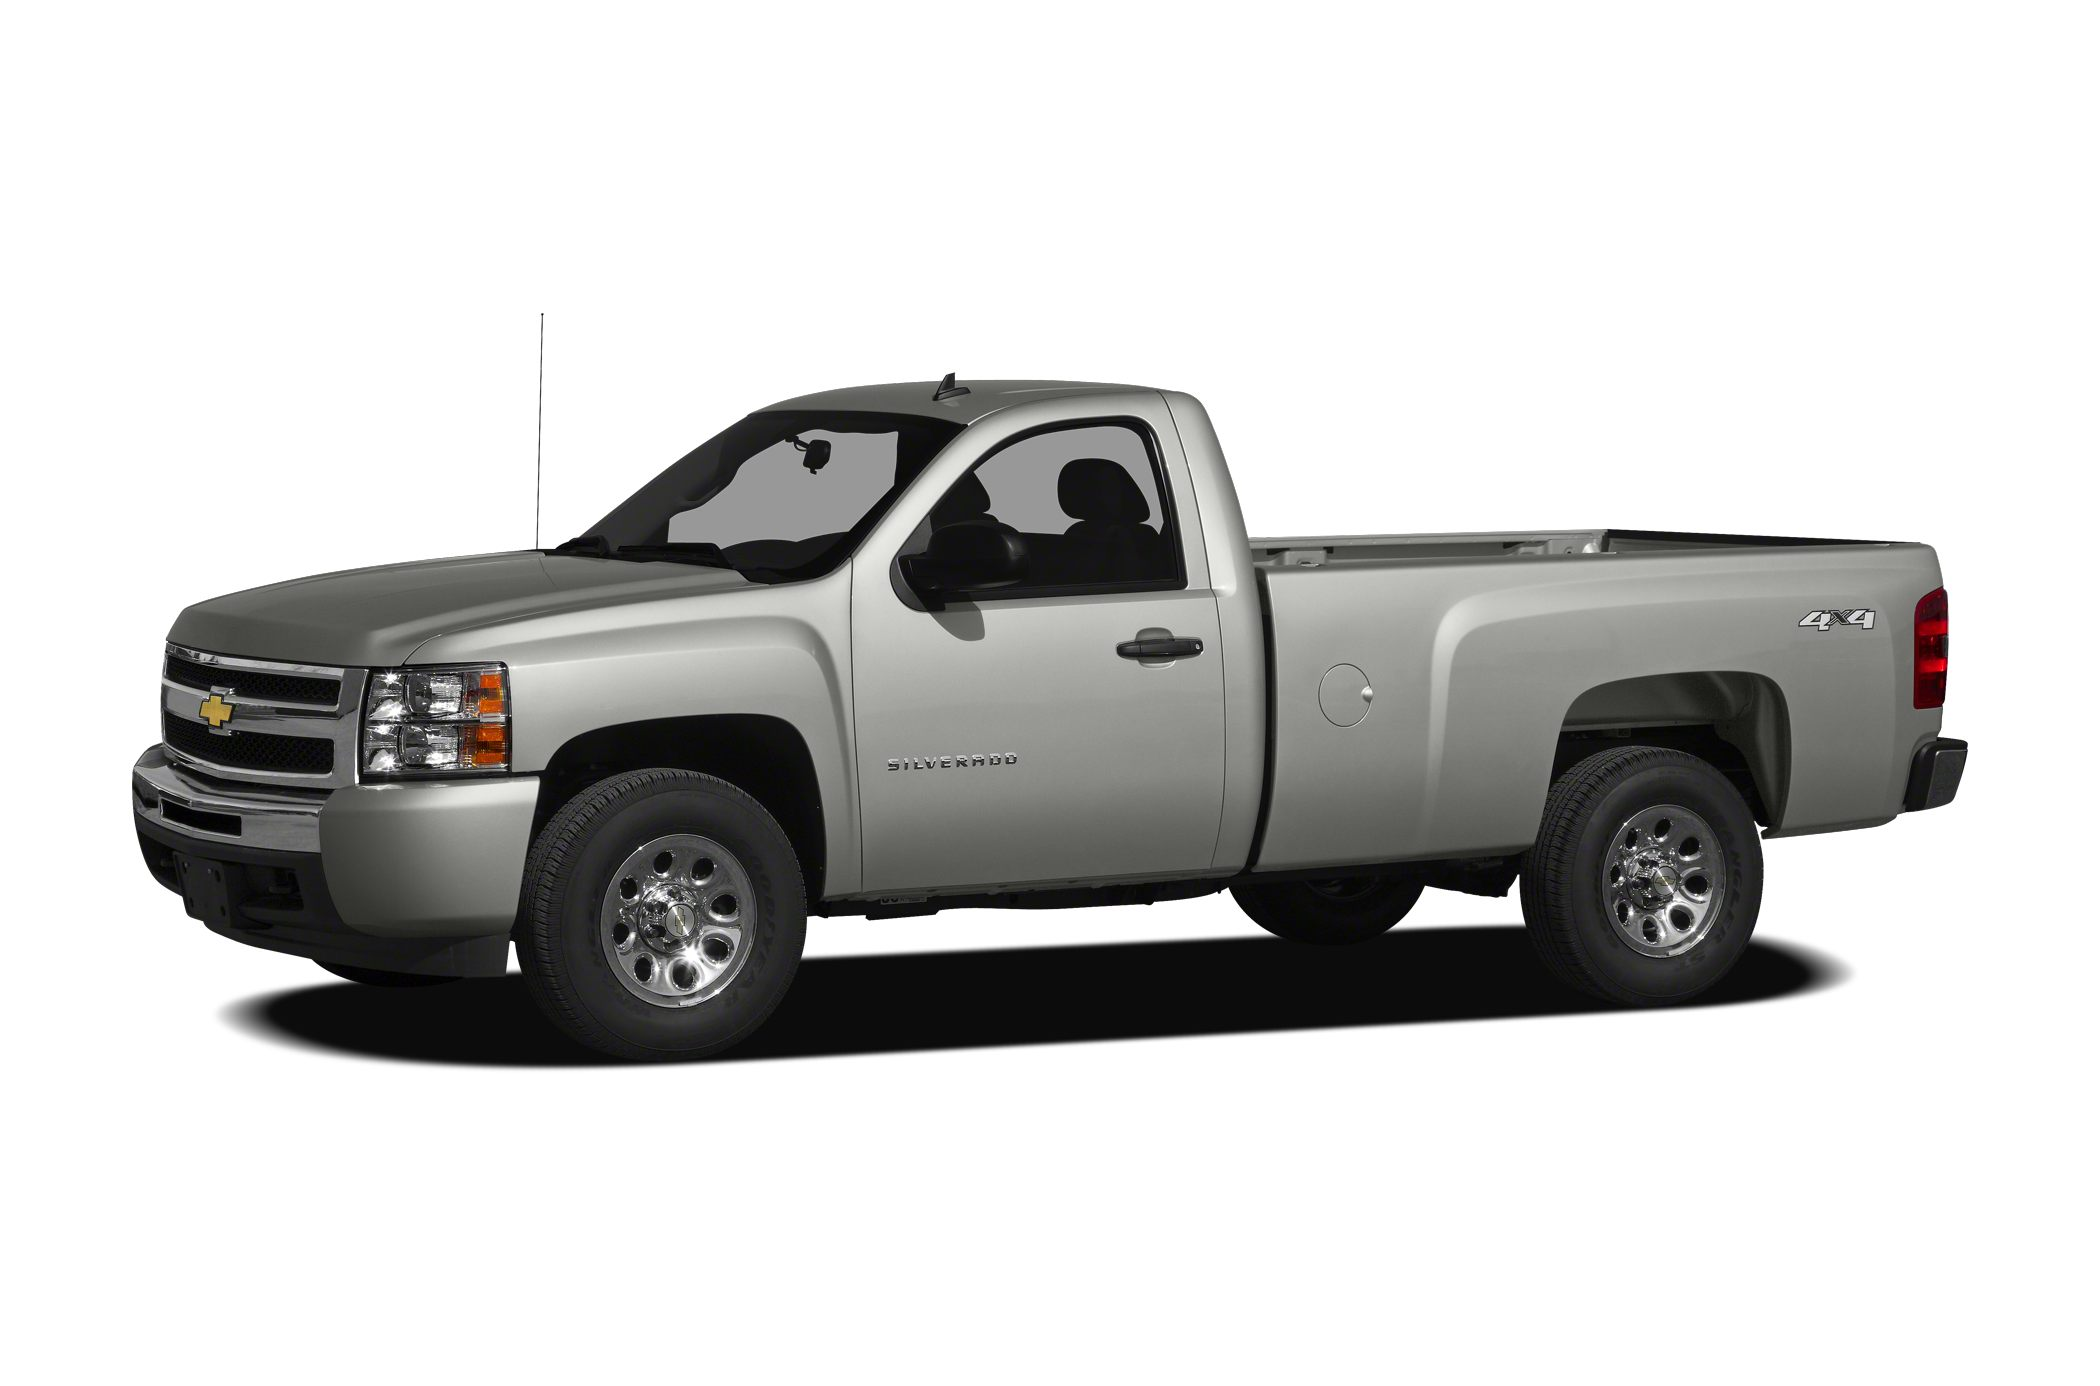 2009 Chevrolet Silverado 1500 Work Truck Regular Cab Pickup for sale in Commerce for $0 with 83,345 miles